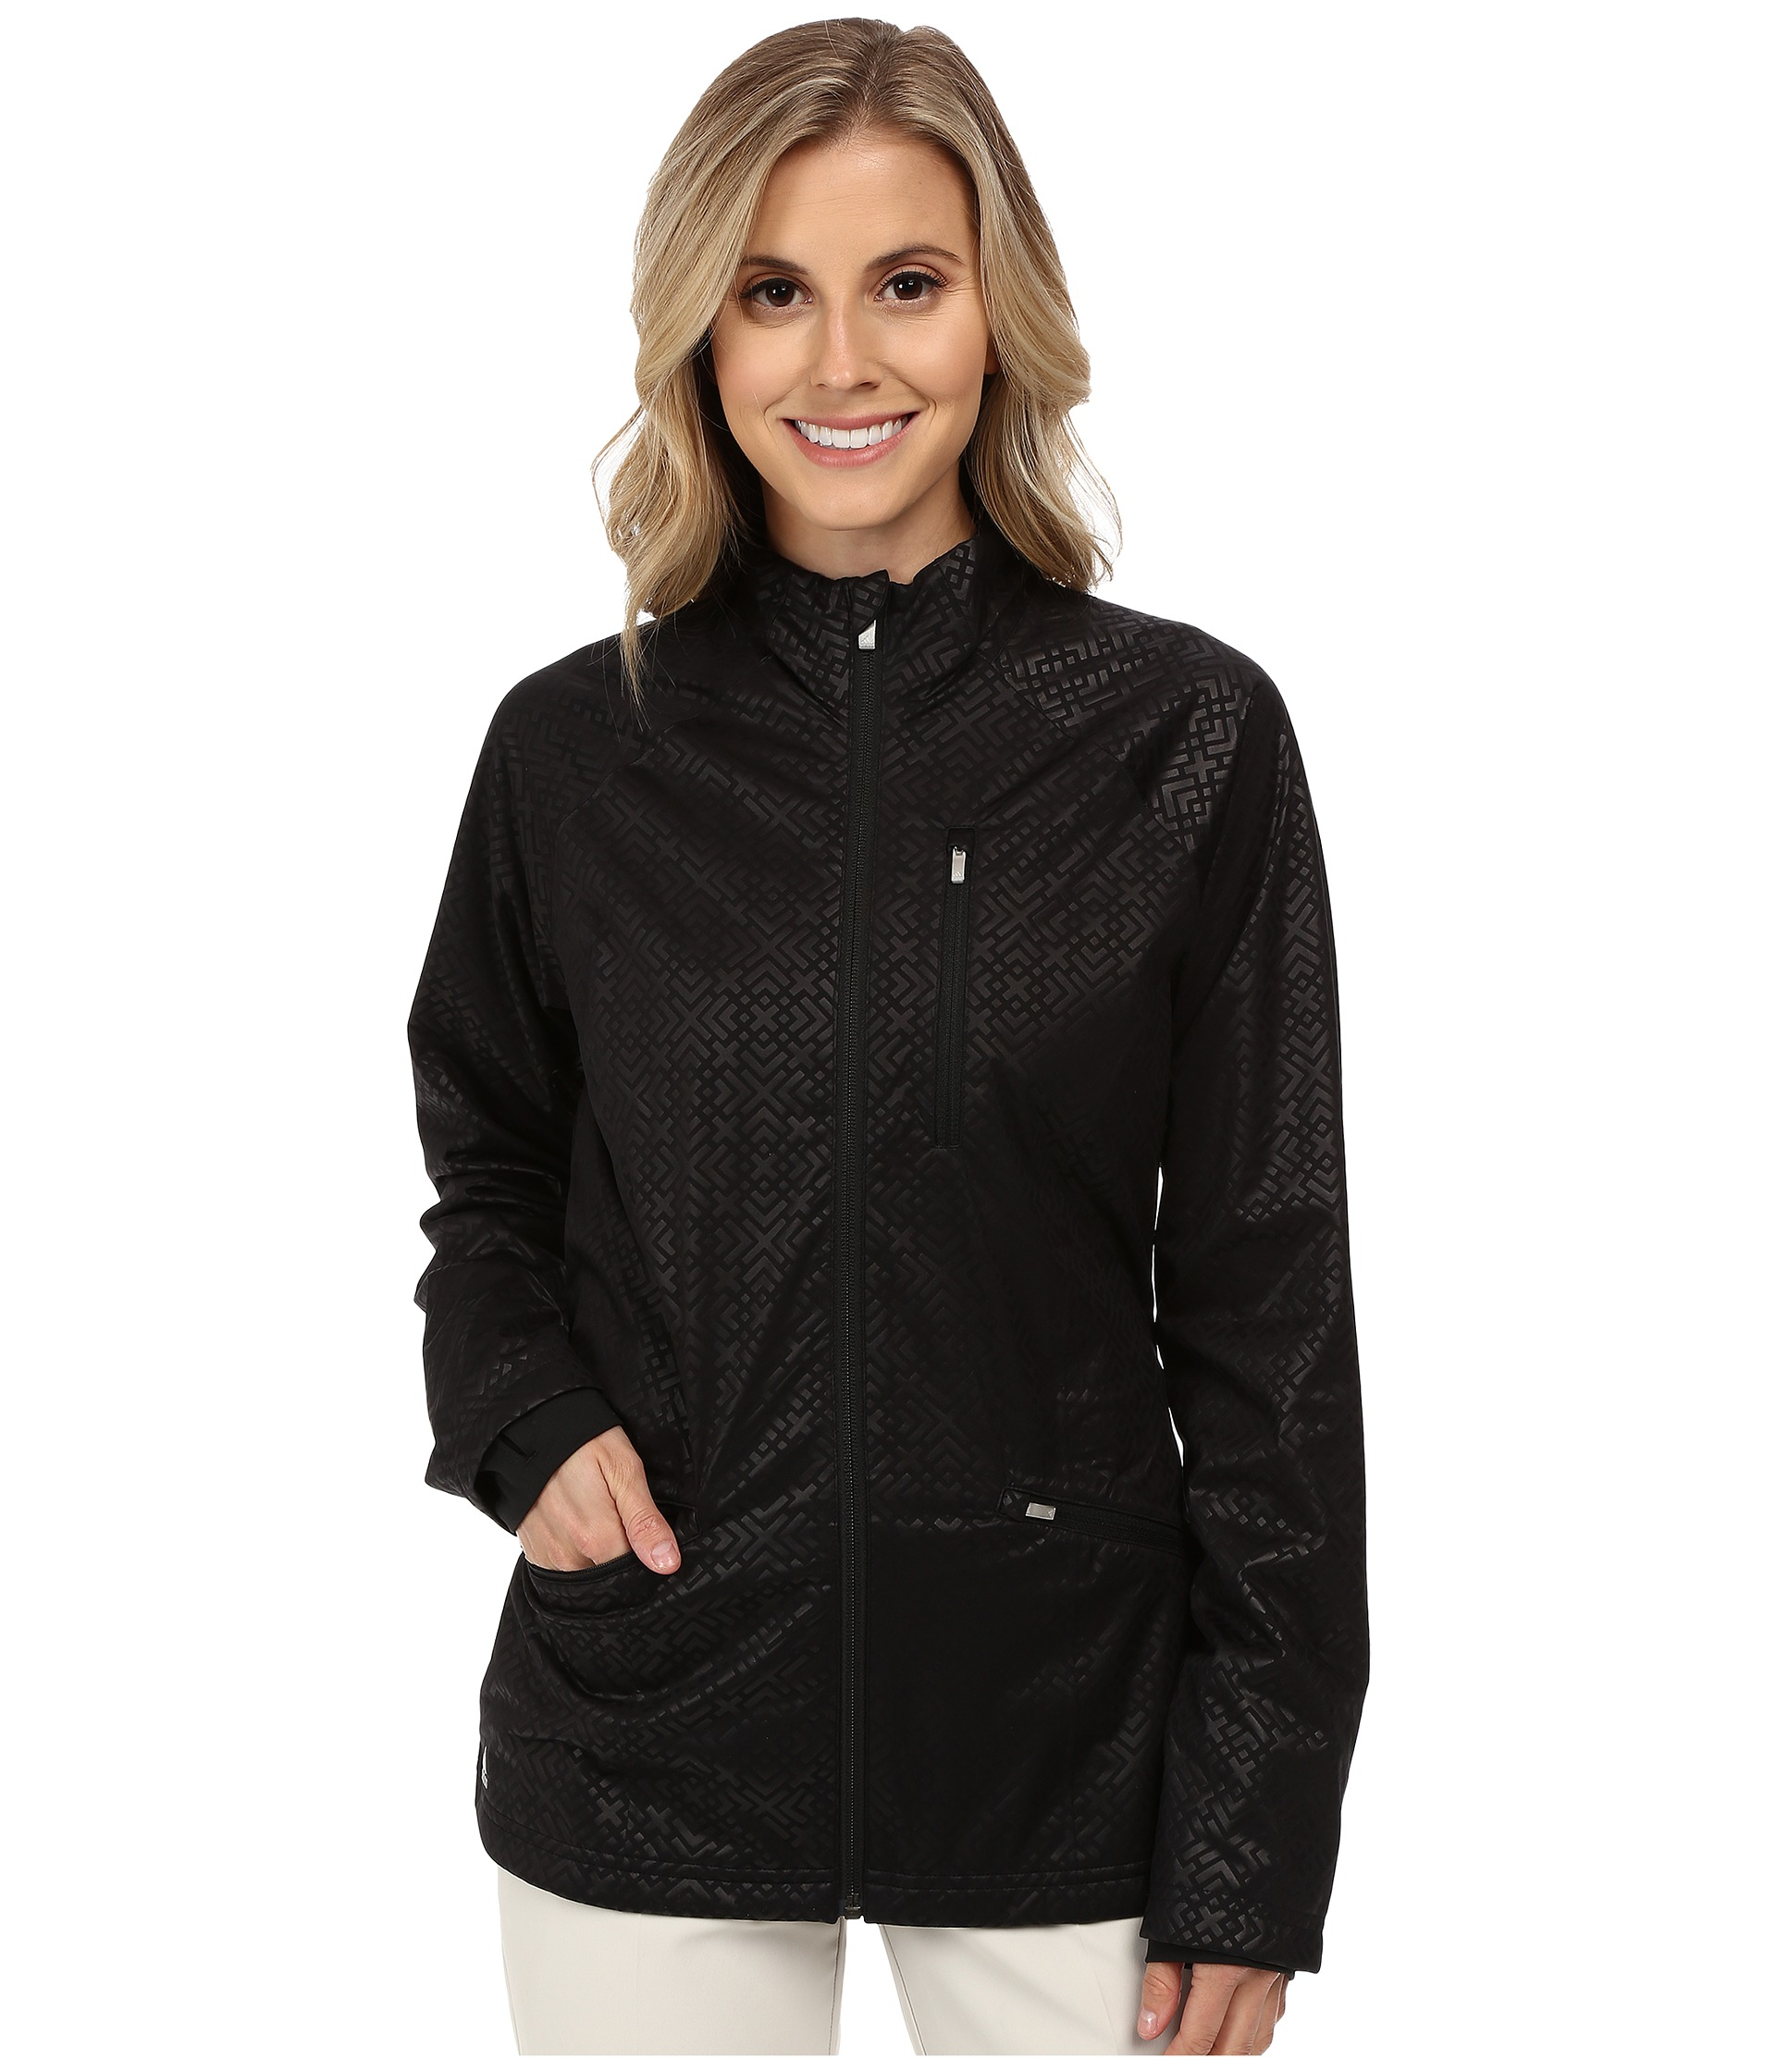 Adidas Climaproof Fashion Rain Jacket in Black | Lyst